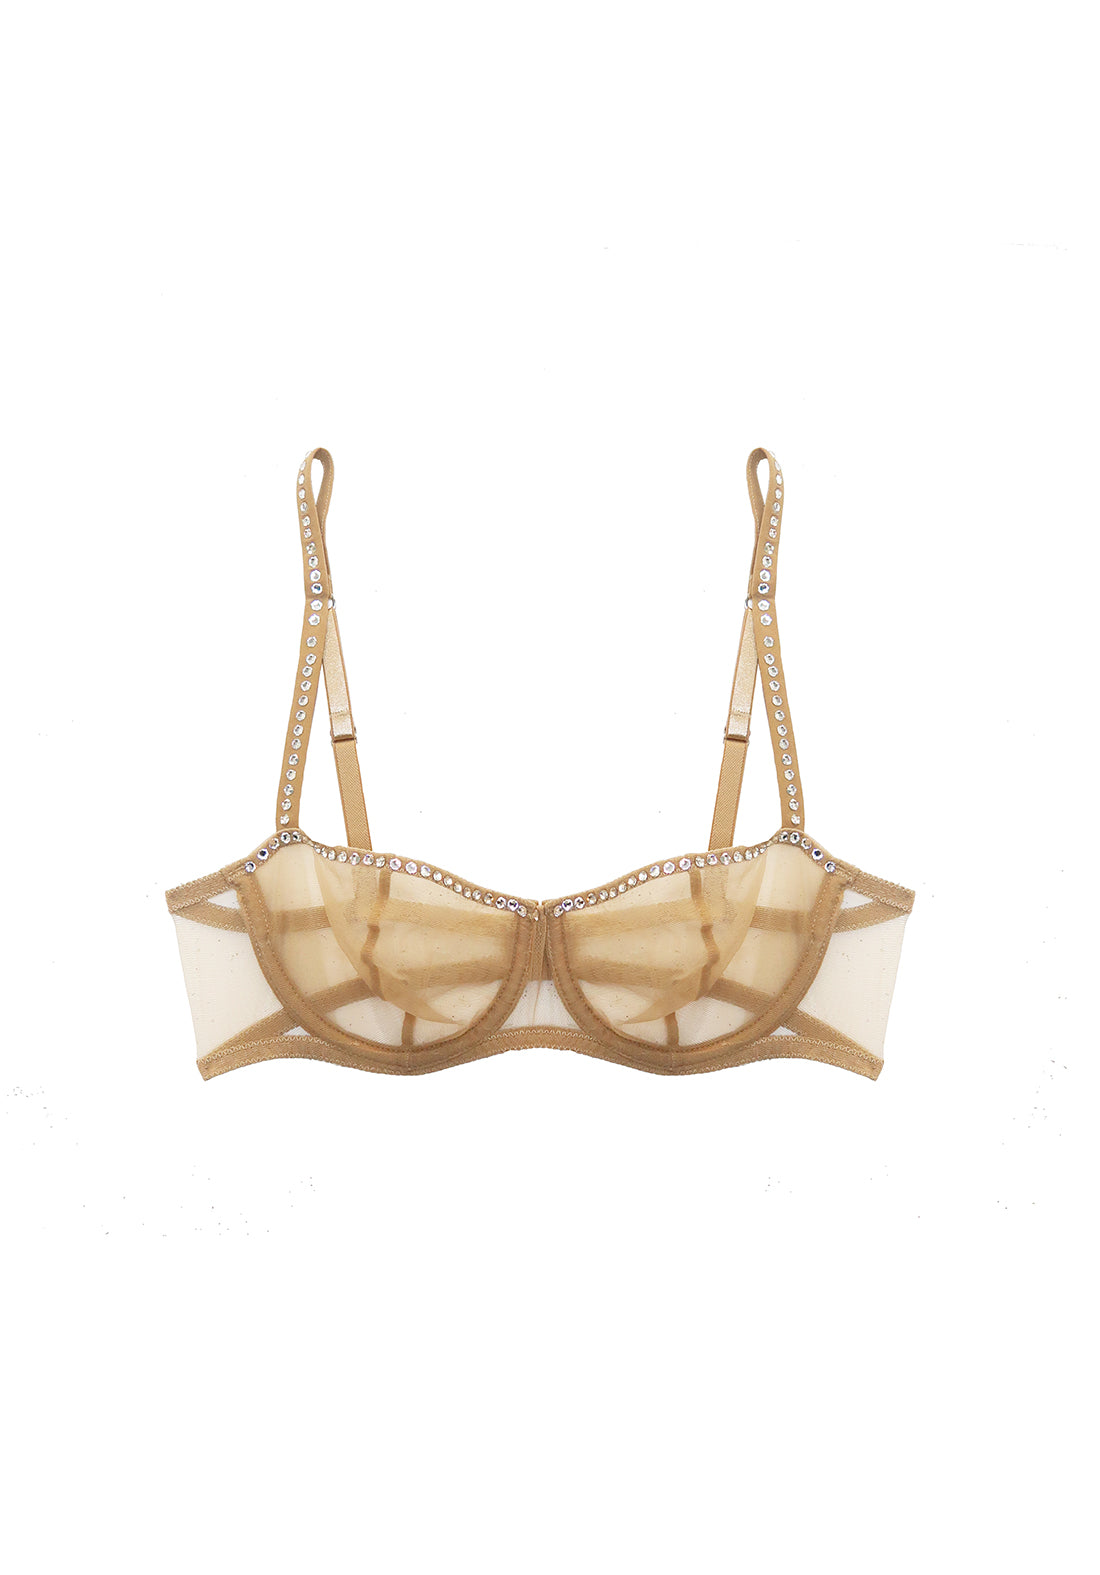 Nuit Interdit Balconette Bra with Swarovski Crystals in Nude - I.D. Sarrieri